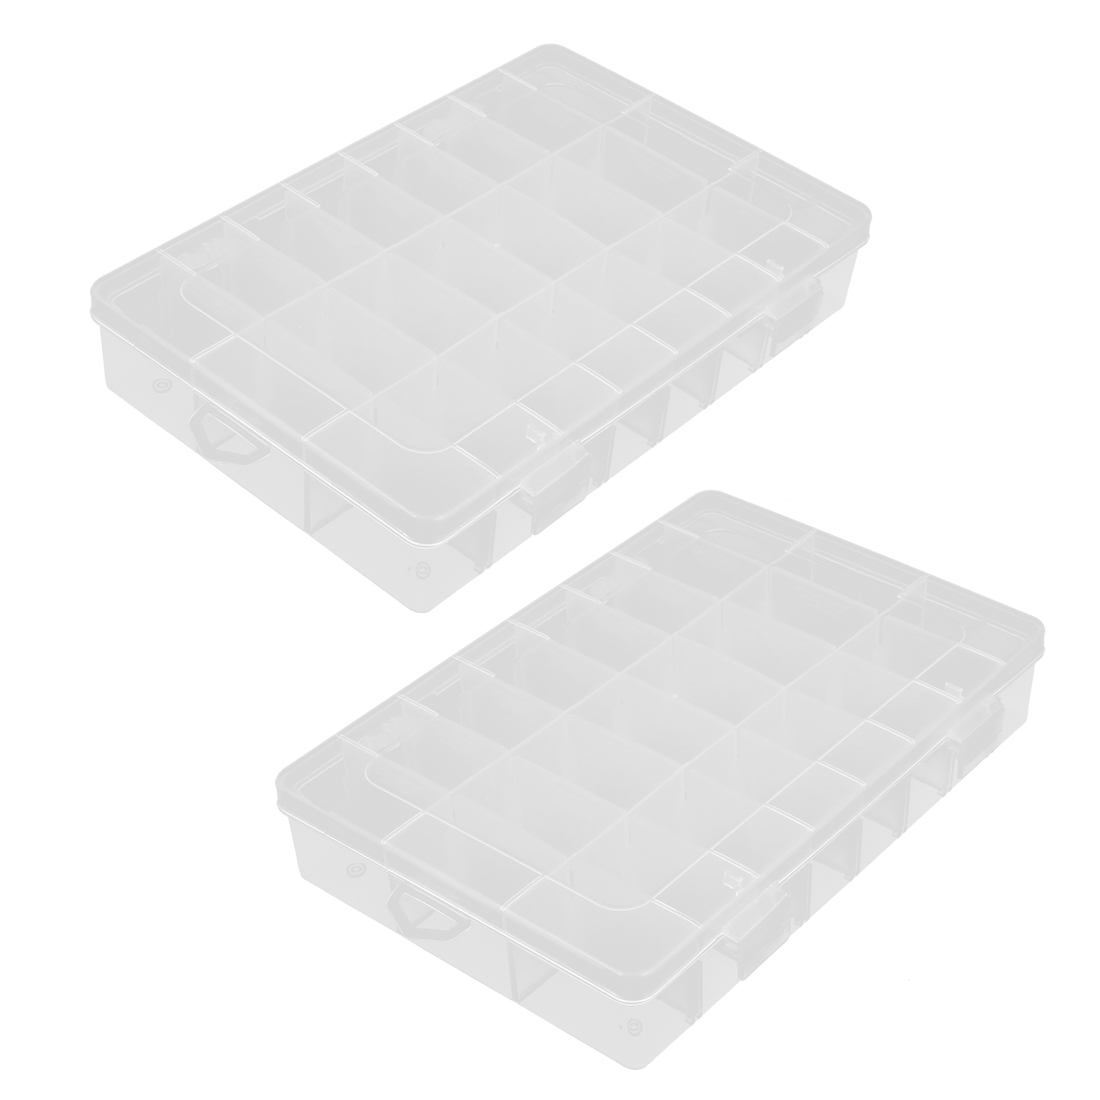 2pcs Clear White Plastic Detachable 24 Slots Clip On Storage Container Holder Box Case